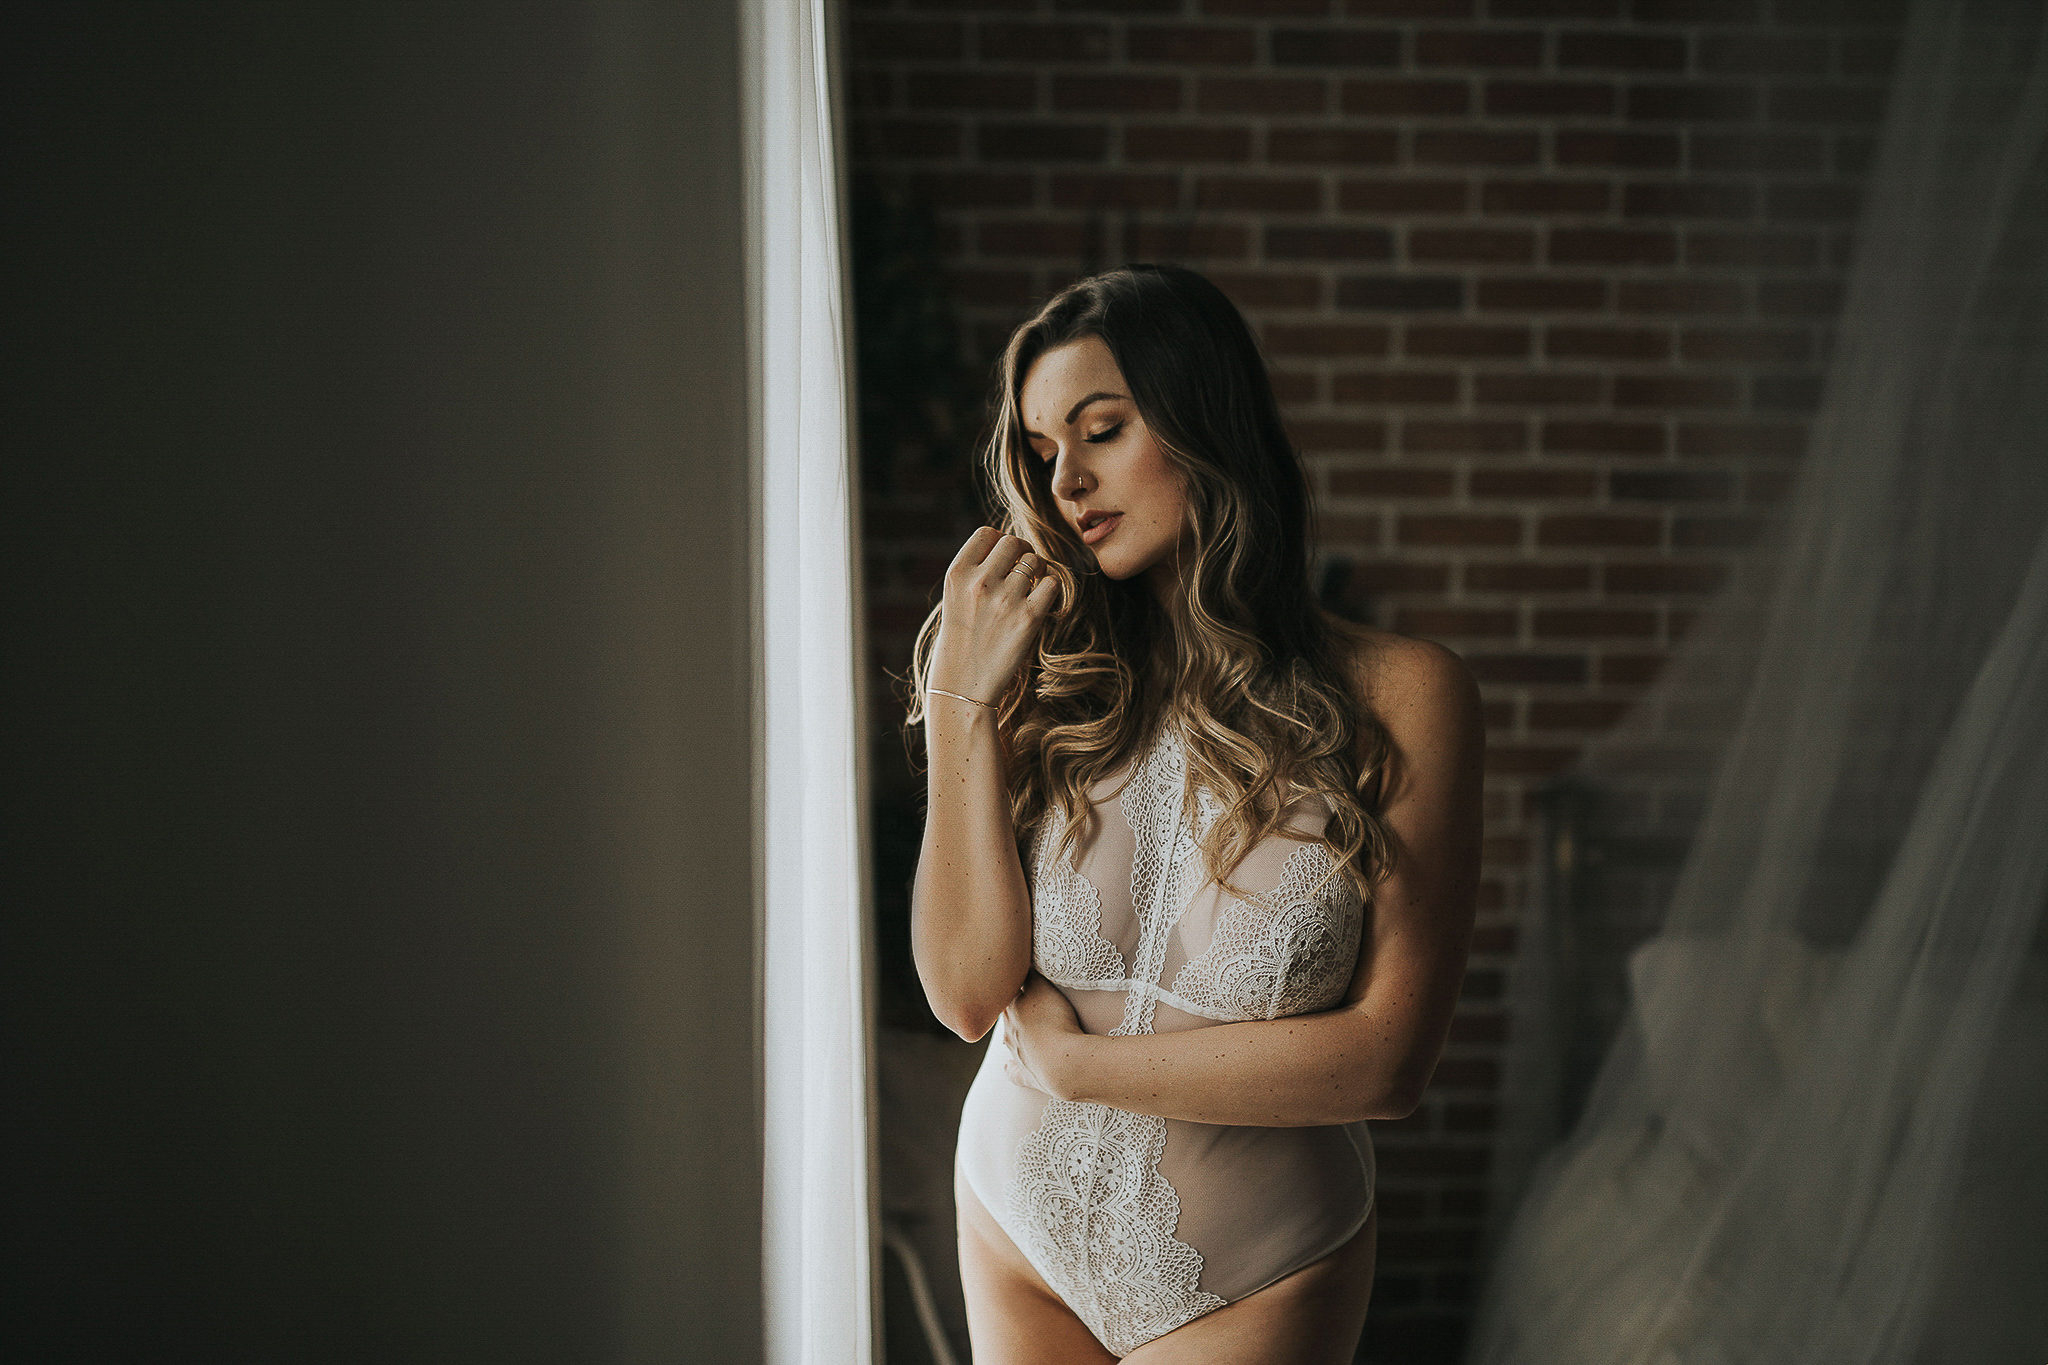 B. Eng Art & Photography — Boudoir Photography — Boudoir Photographer — Atlanta Boudoir Photographer — Boudoir Portraits — Boudoir Portraiture — Atlanta Boudoir Portraits — Atlanta Boudoir Photos — Best Atlanta Boudoir Photographer — Best Atlanta Photographer